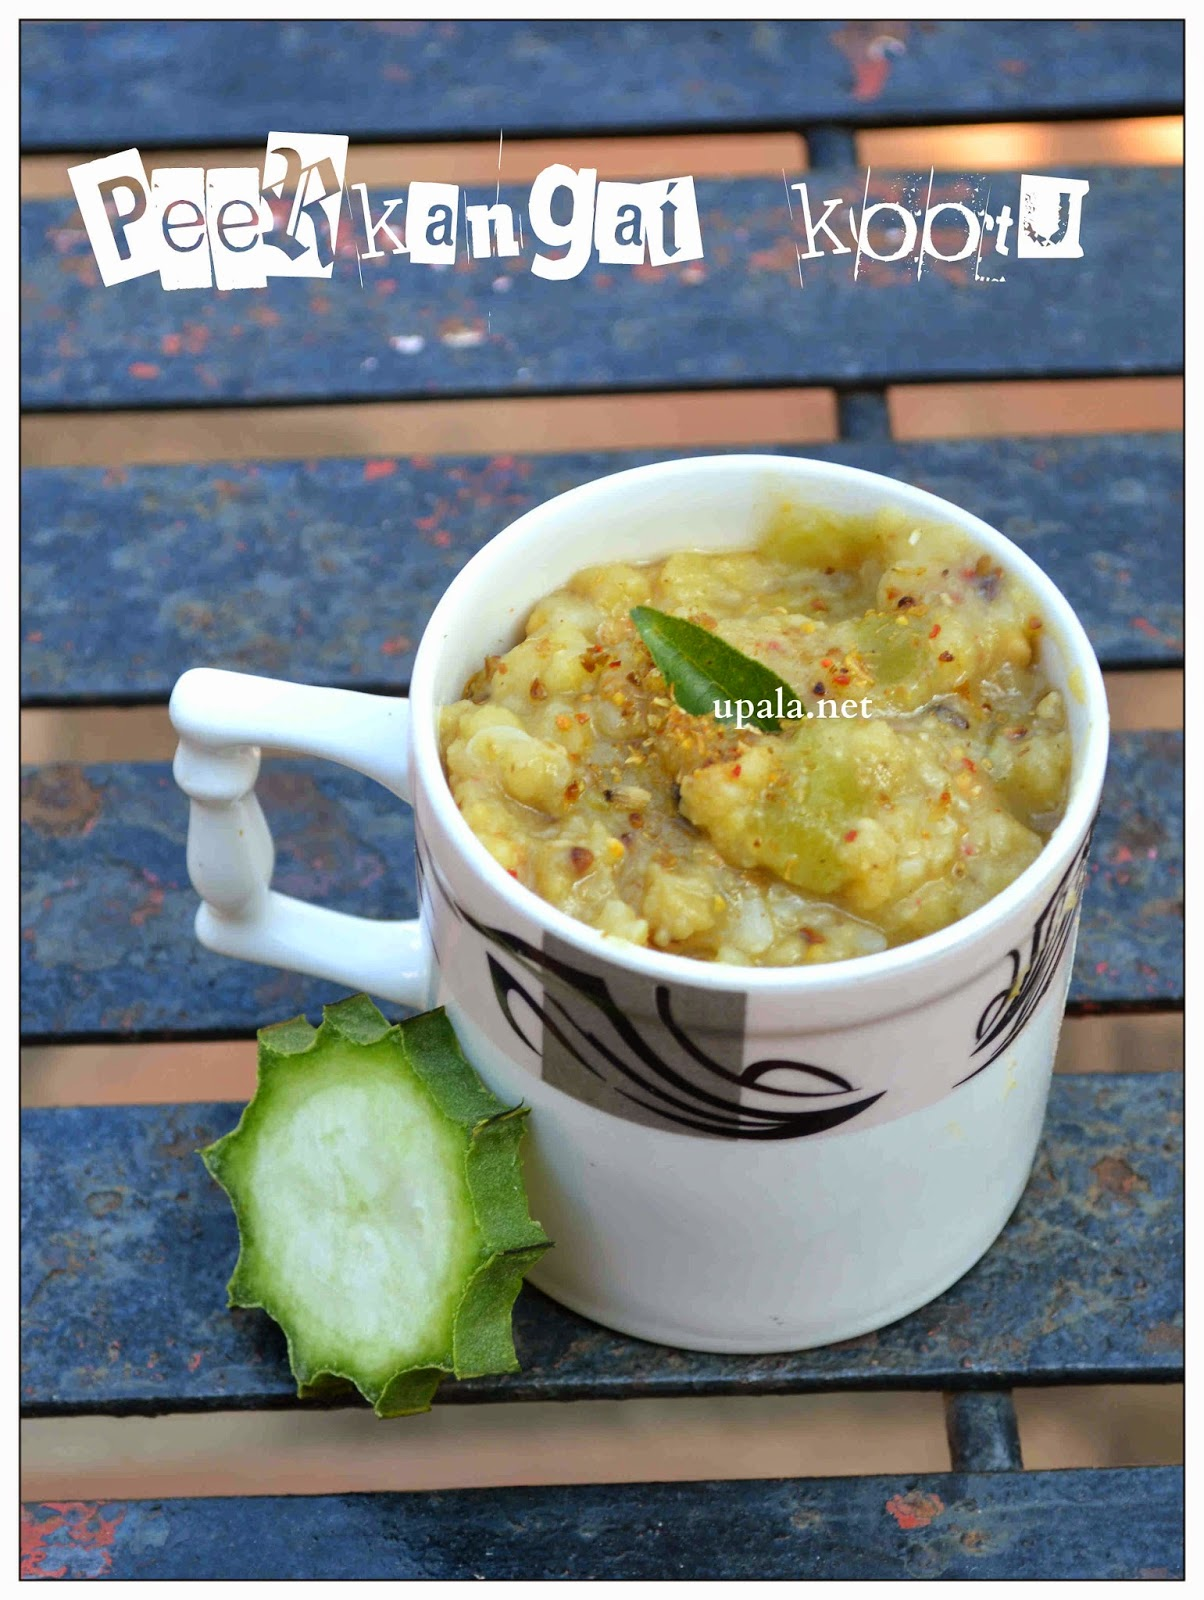 Ridge gourd kootupeerkangai kootu ridge gourd grabs its special position in indian kitchens for its immerse health benefits this ridge gourd kootu is given regularly to new mothers to forumfinder Choice Image